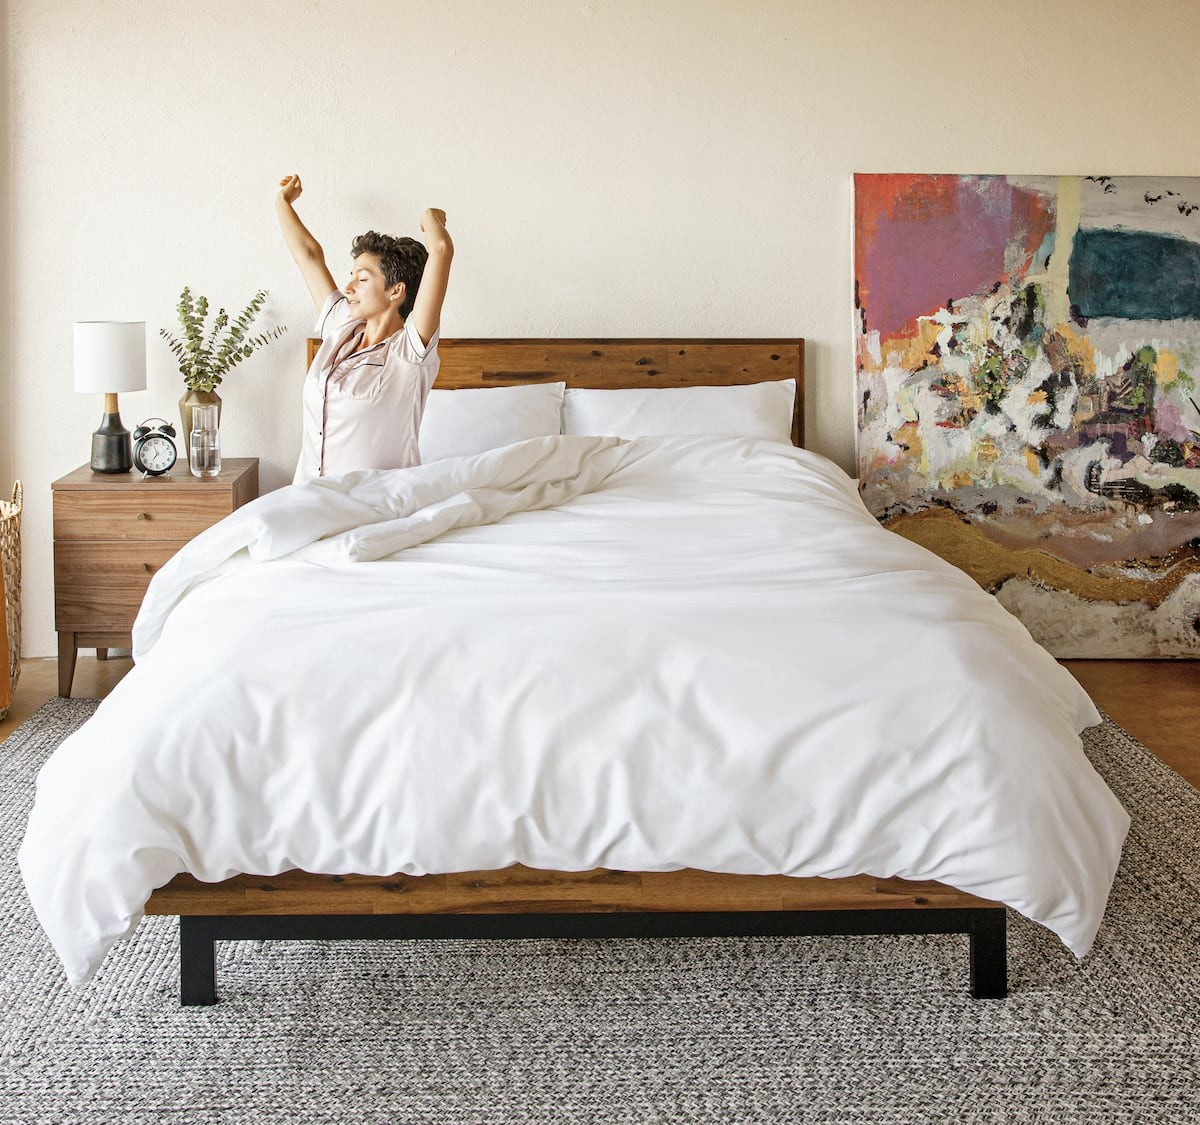 Notch Hypoallergenic Down Alternative Comforter keeps your temperature regulated all night